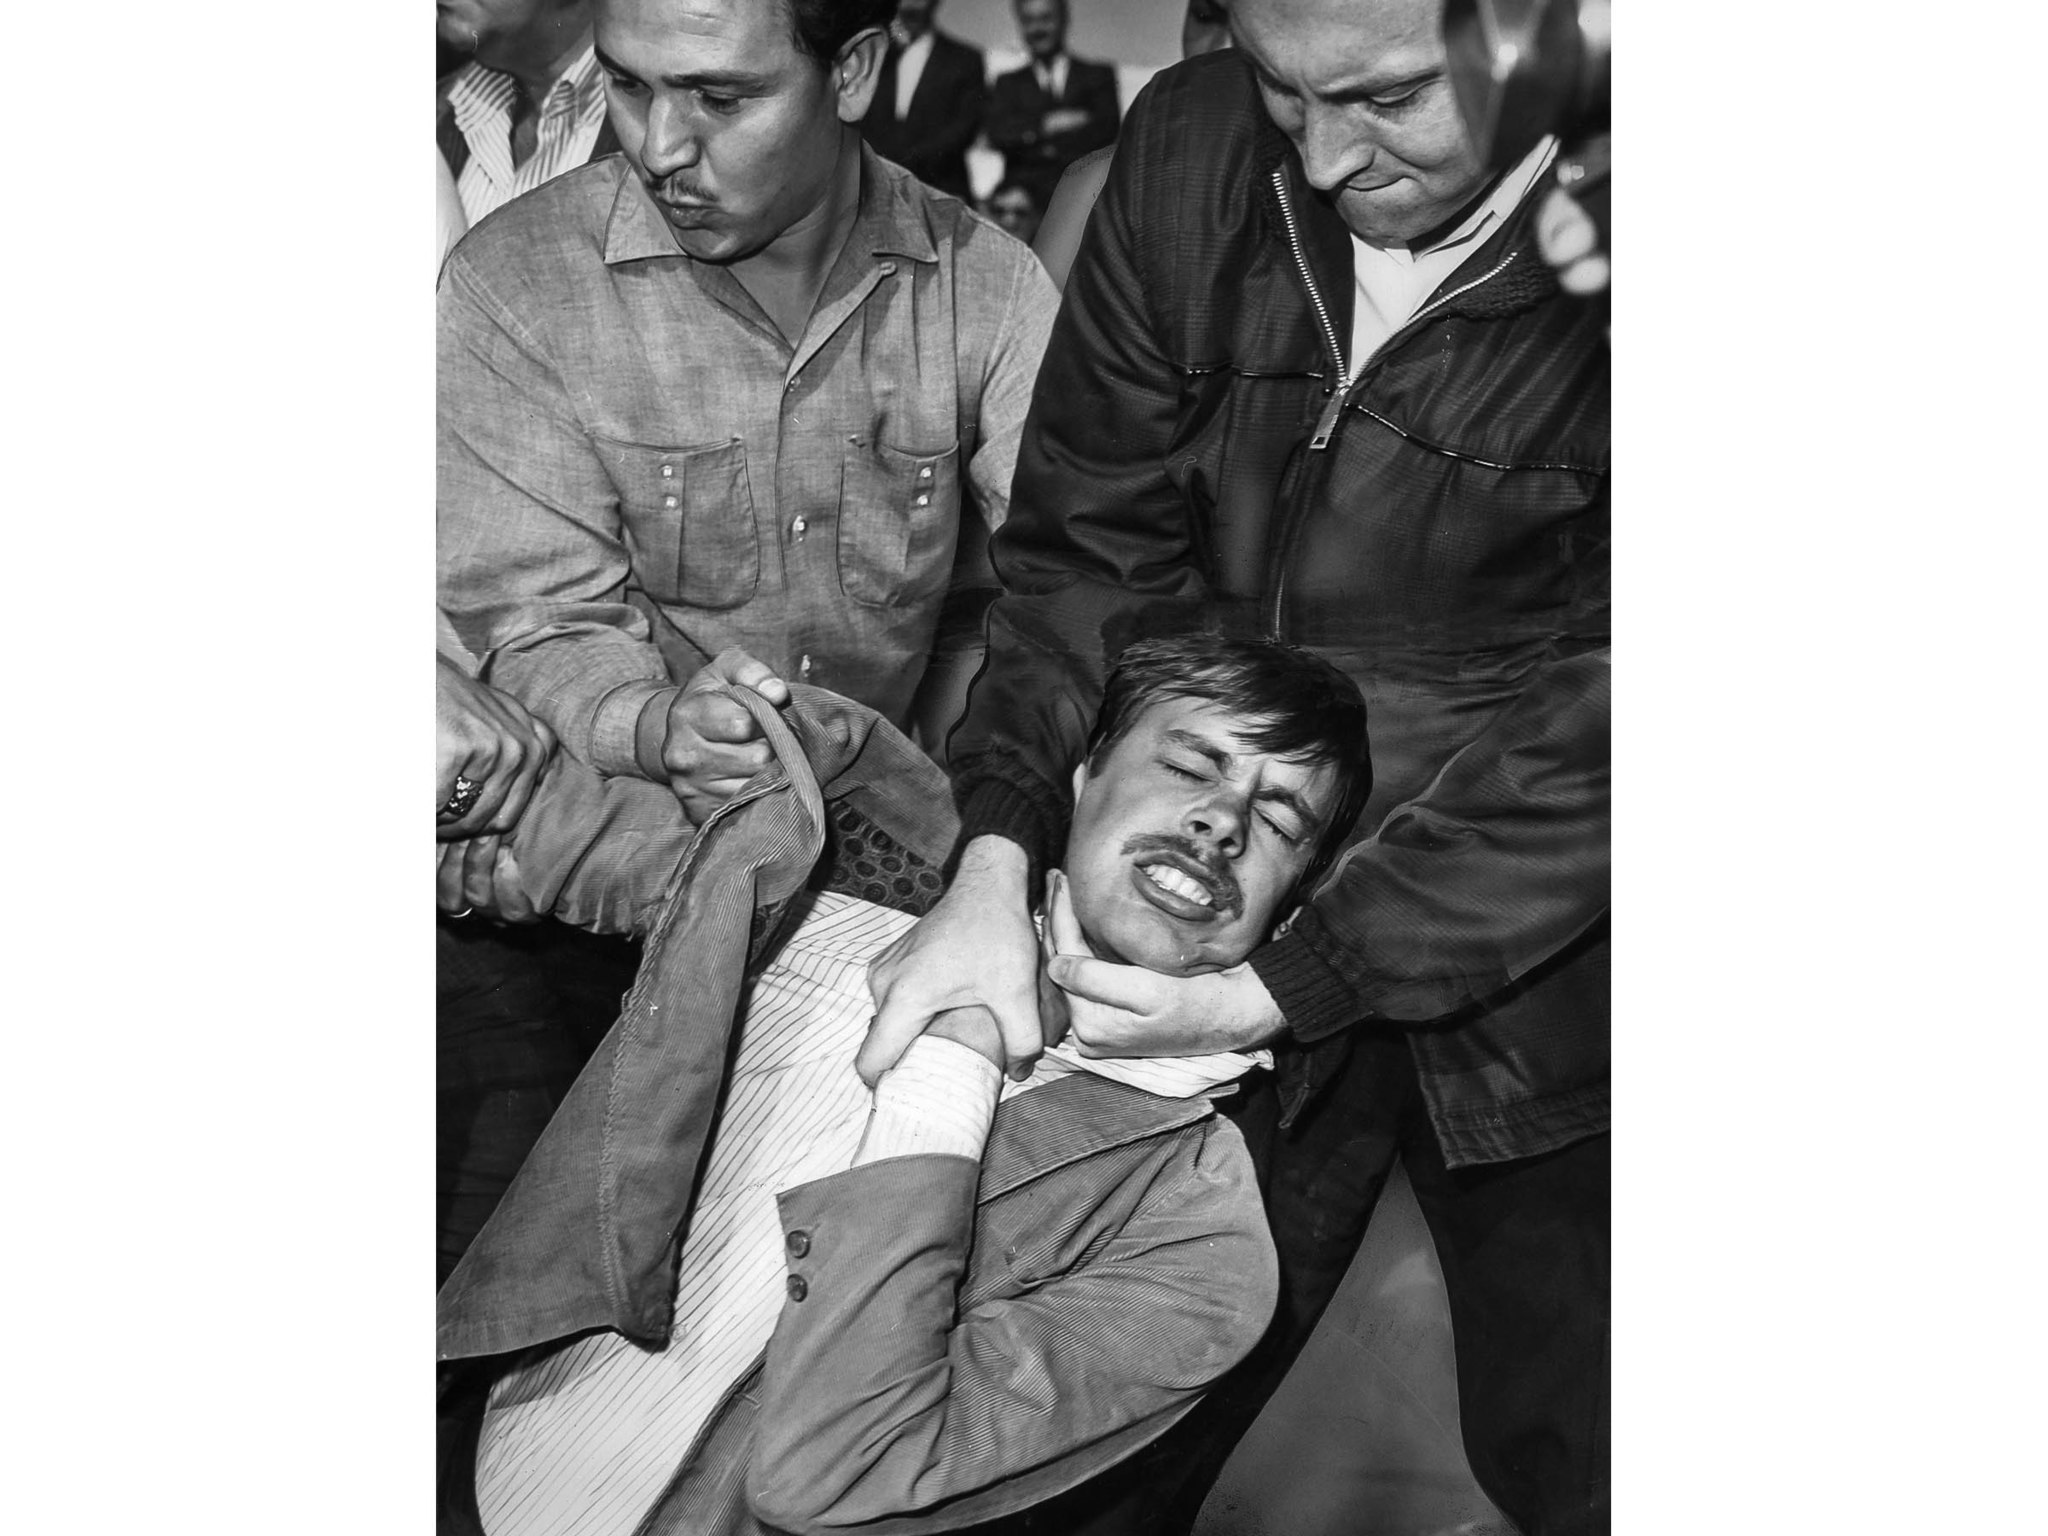 March 10, 1965: U.S. deputy marshals forcibly remove a demonstrator from driveway entrance to Federa